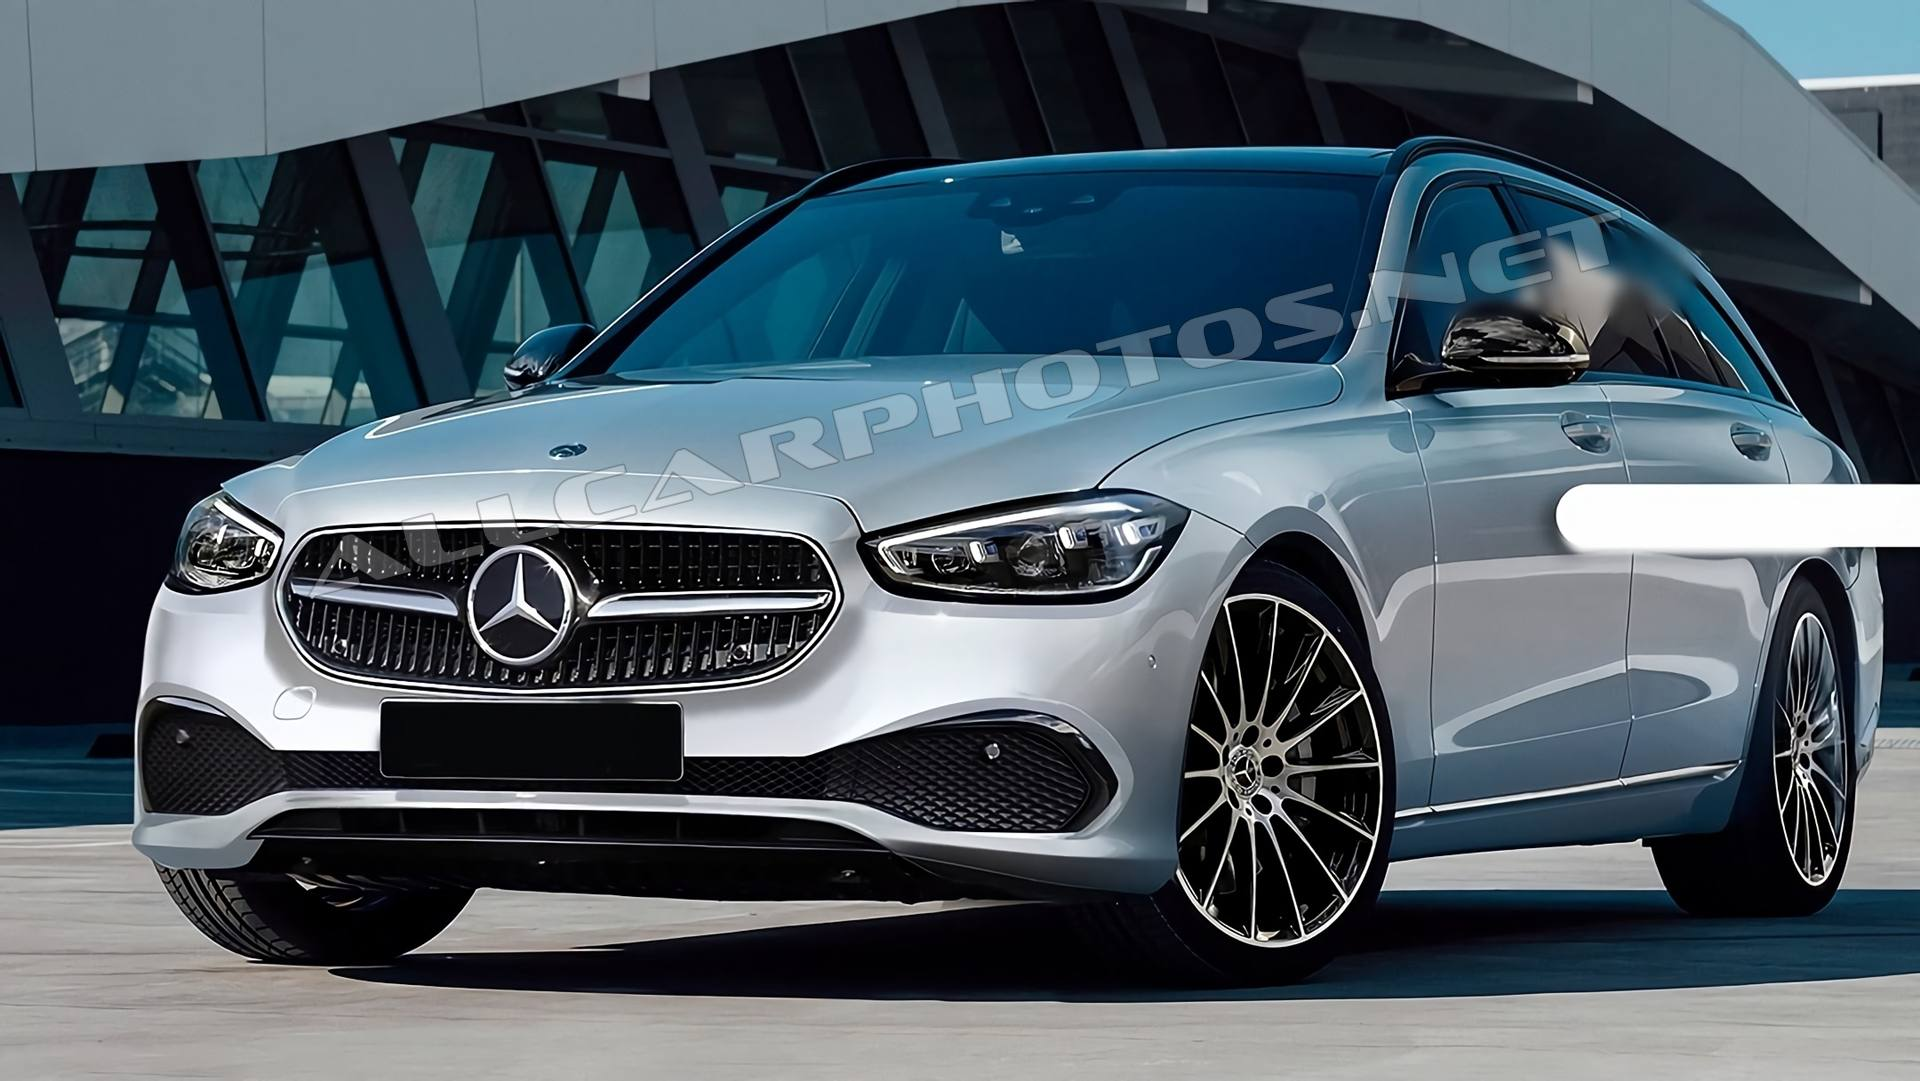 Mercedes C-Class 2021: (W206) Ready For its World Debut的照片